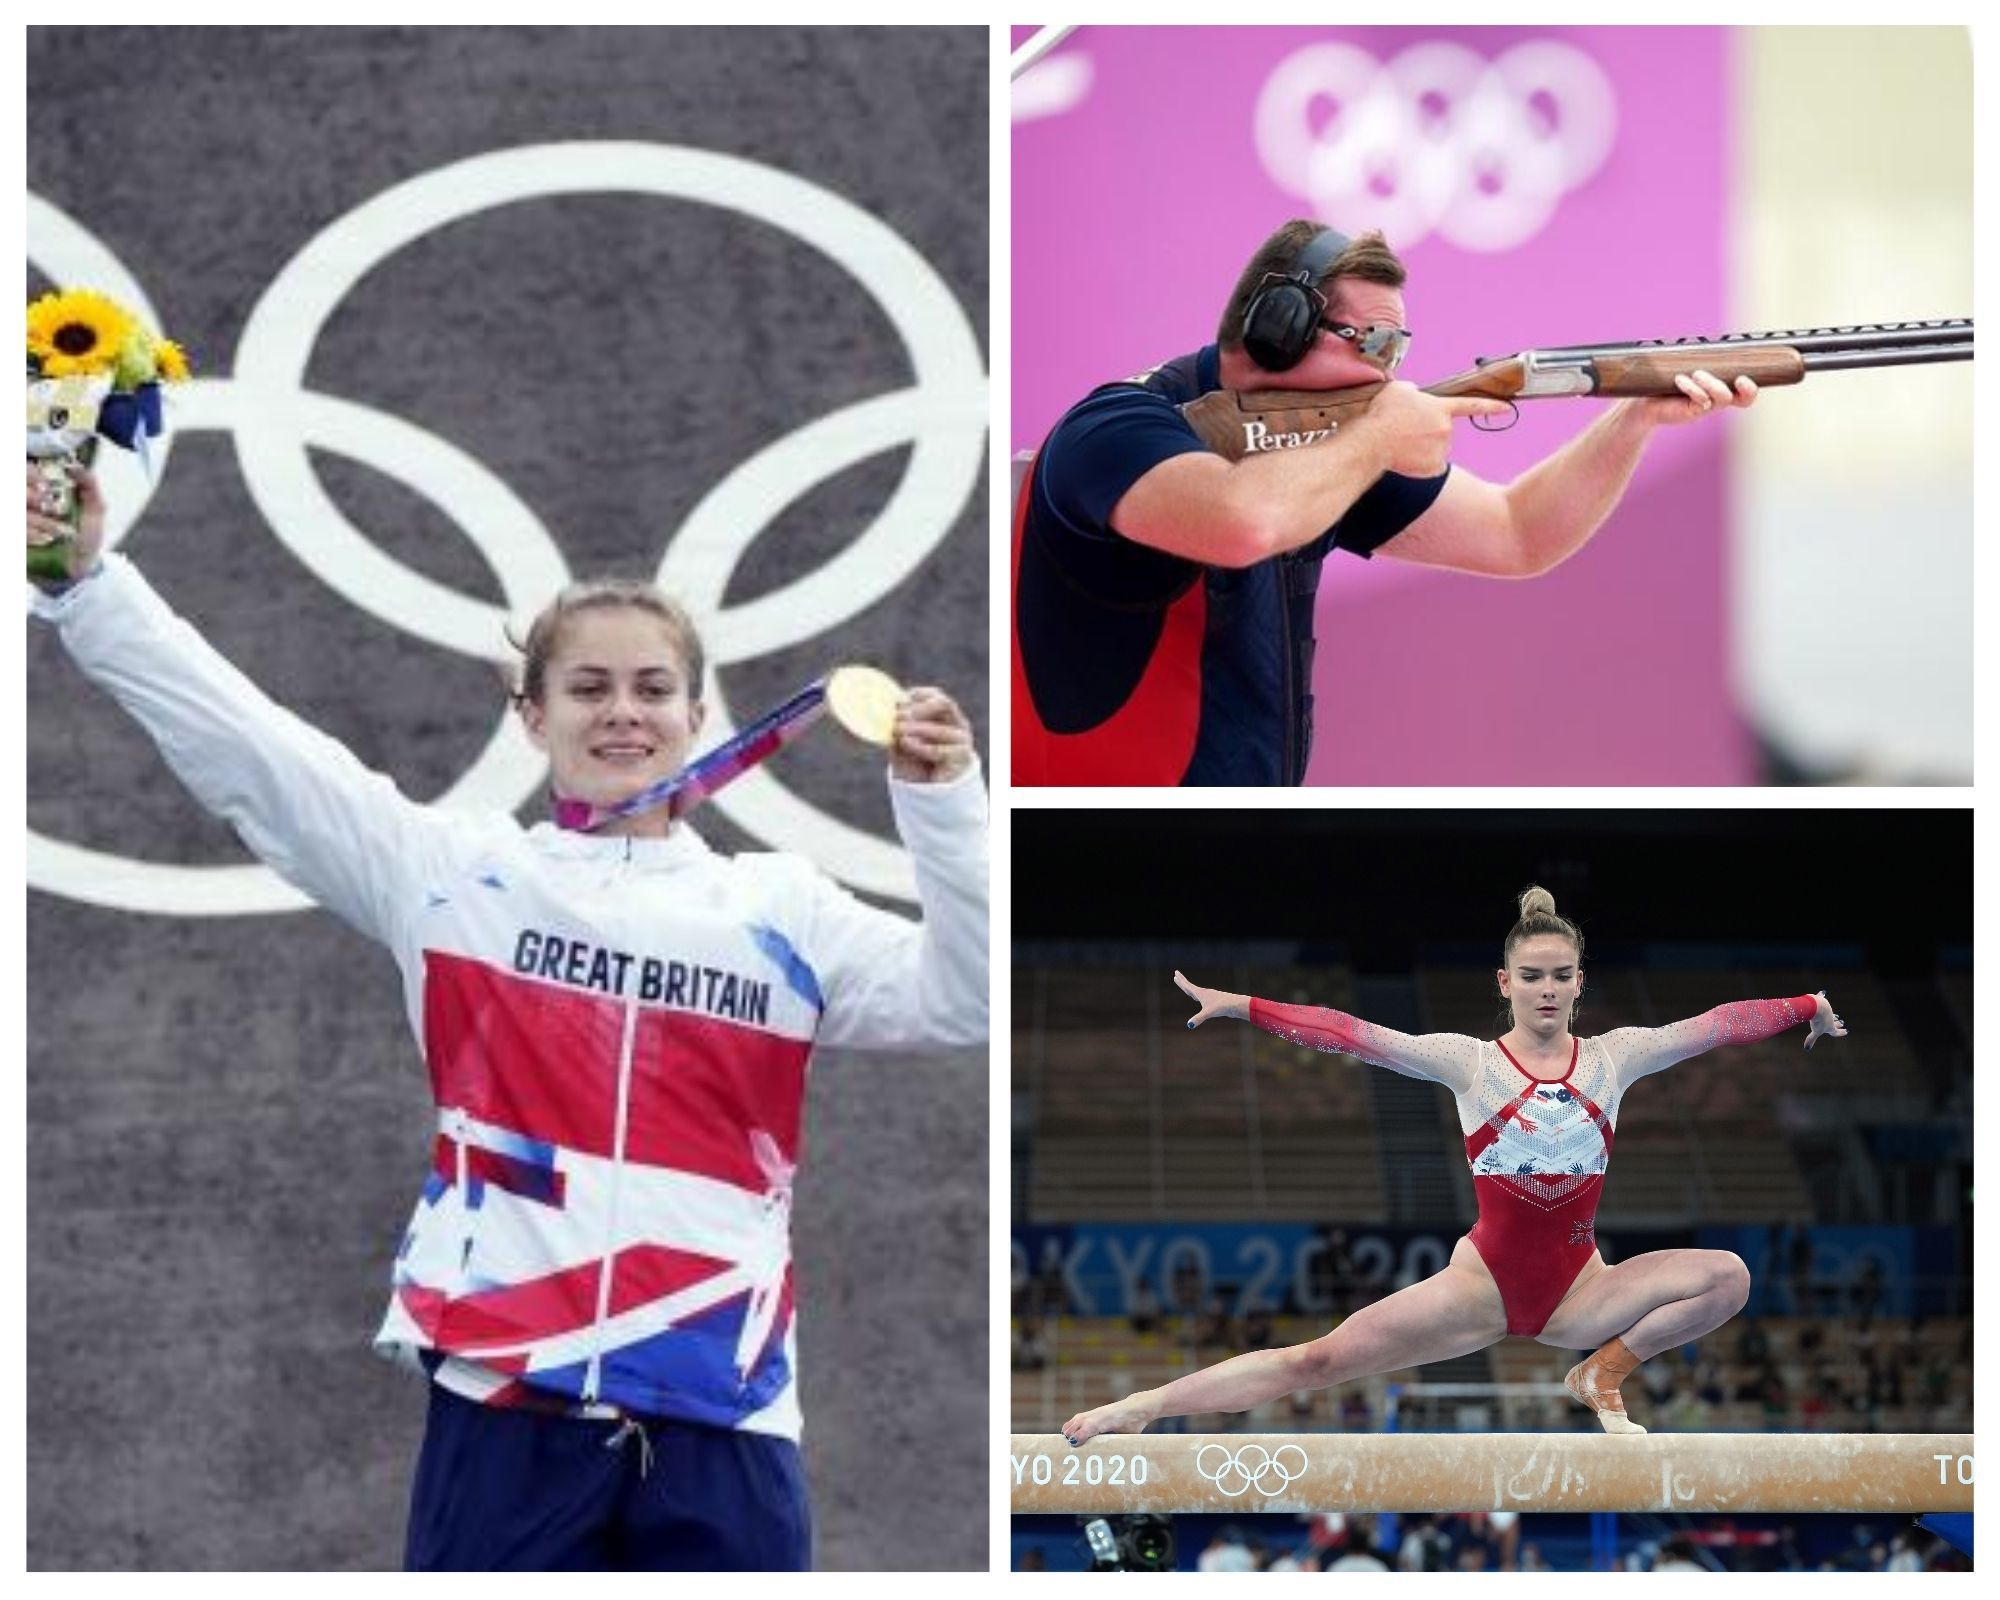 Essex athletes top the medal tables at Toyko 2020